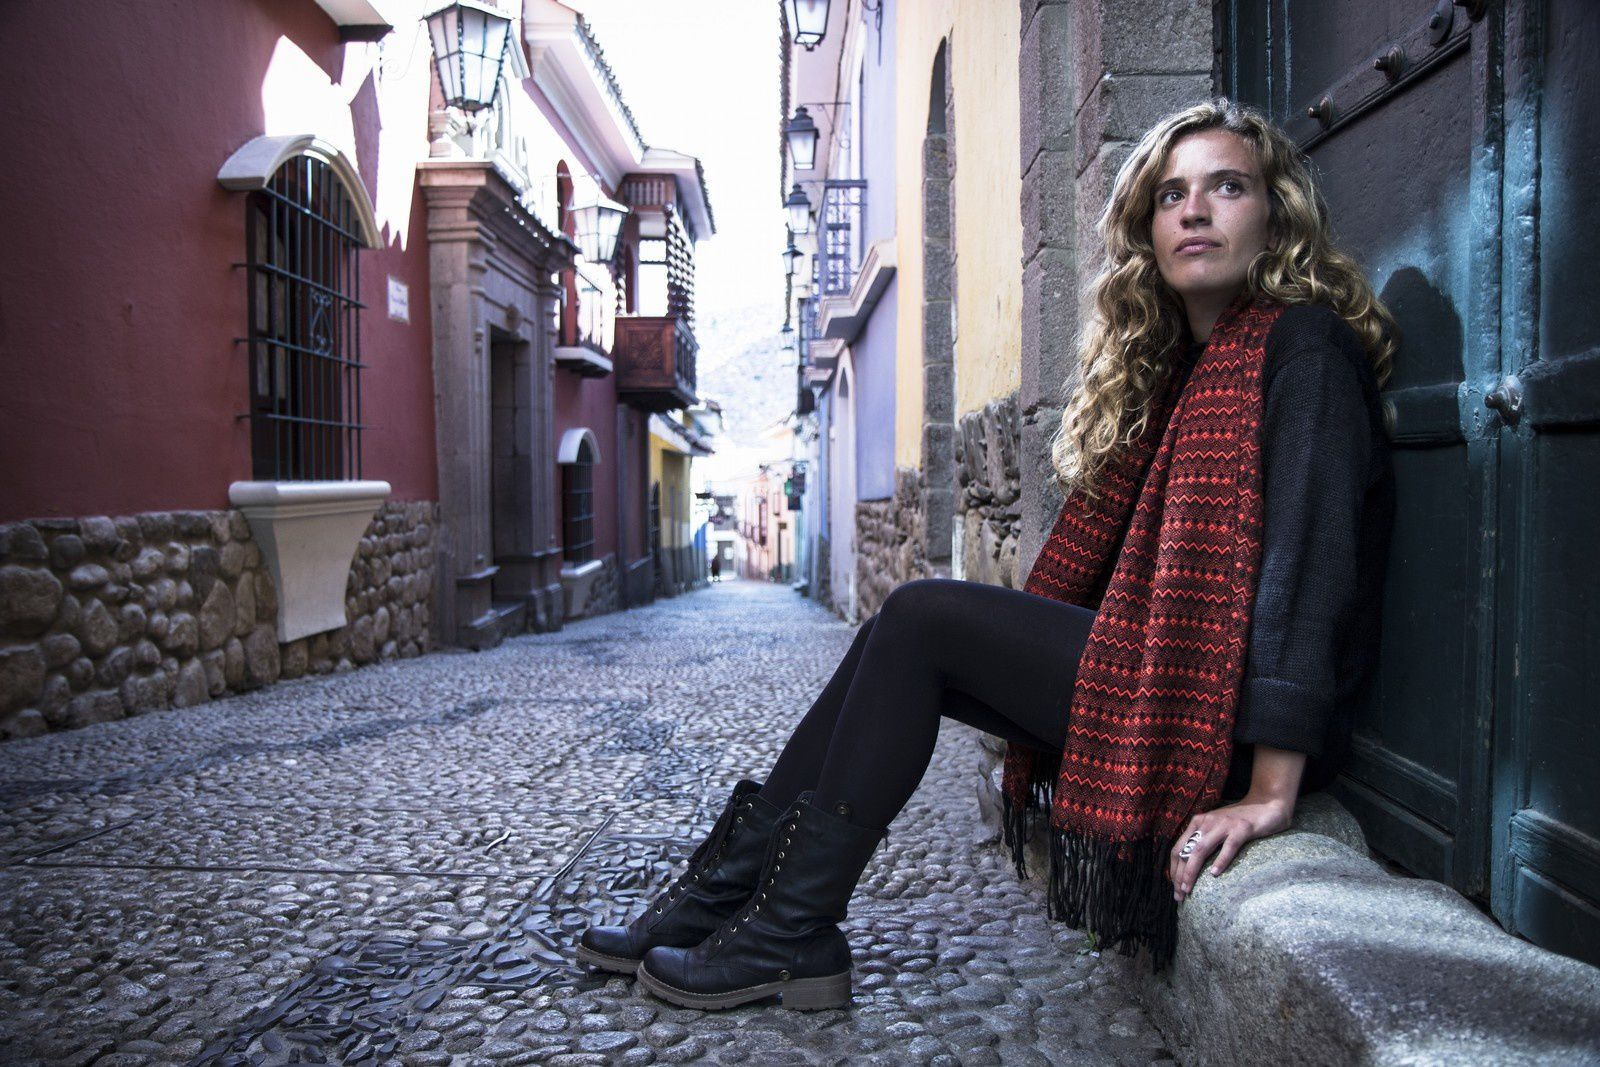 SUSTAINABLE ALPACA CLOTHING TRADE - Promotion pictures - Bolivia/Altiplano artisans ~ Canada/Samantha Hull